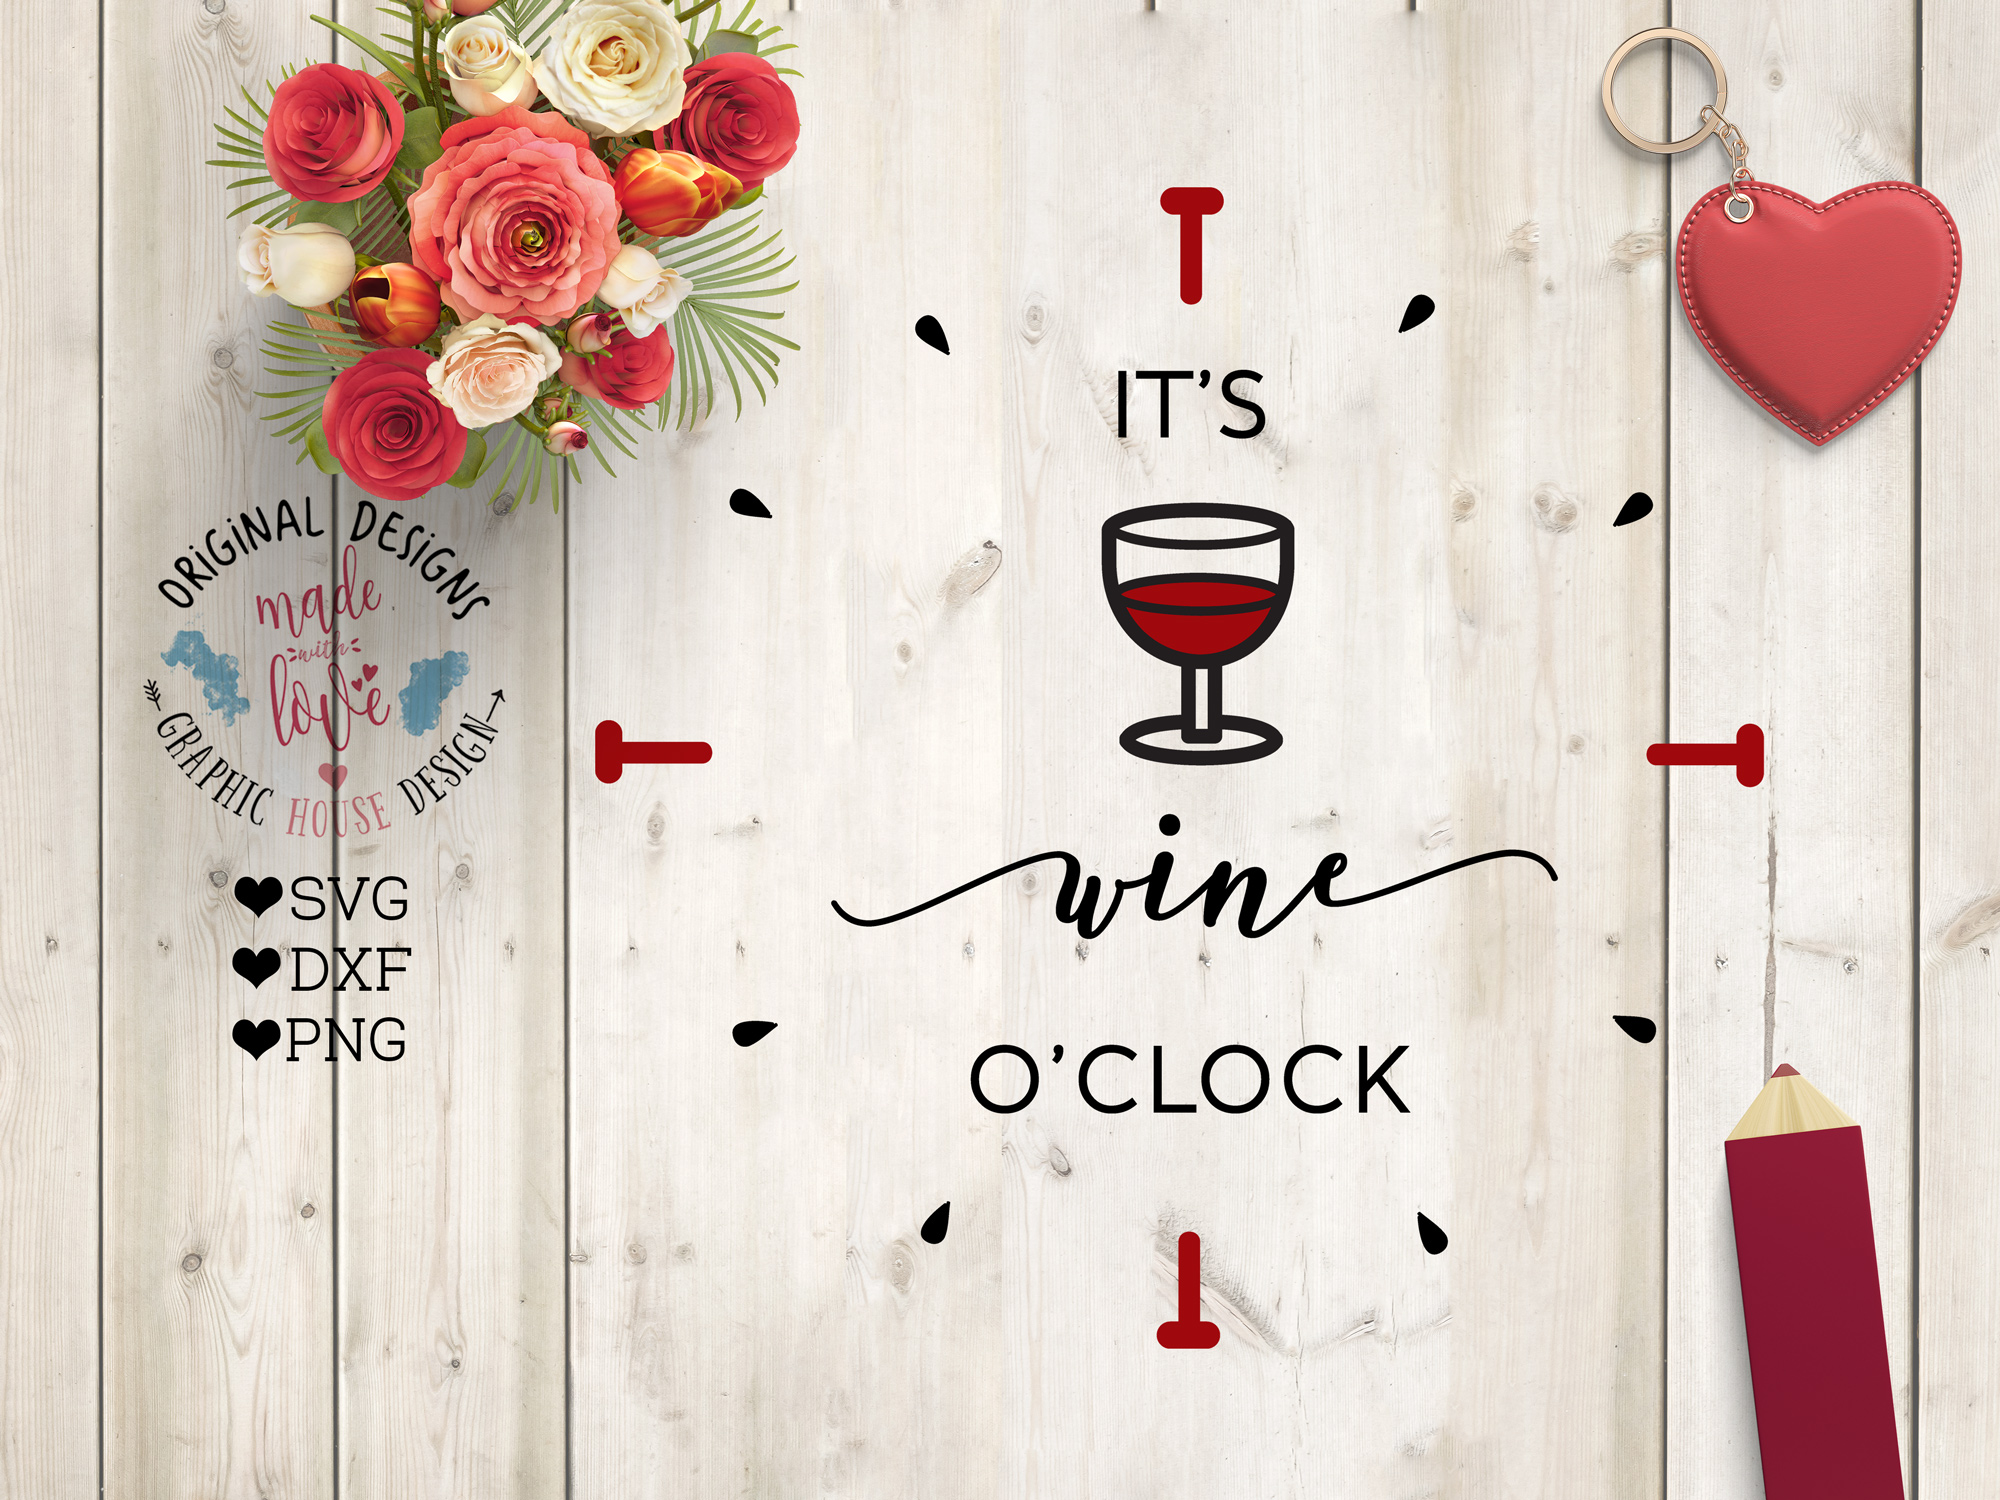 It's wine o'clock Cutting File (SVG, DXF, PNG) example image 1